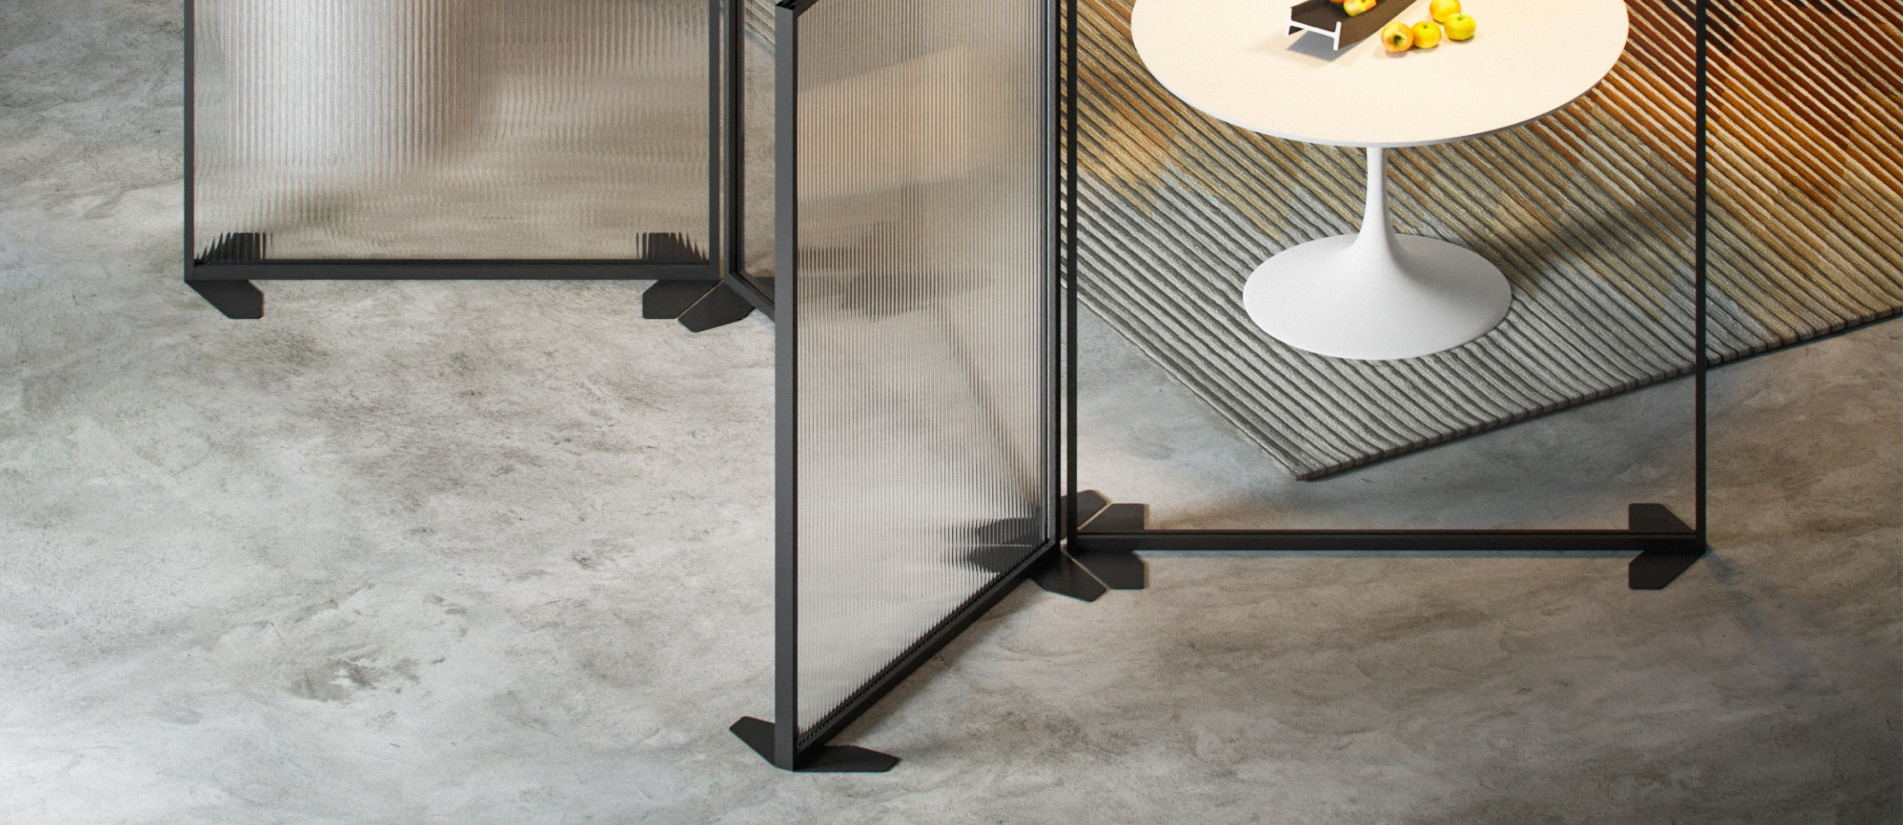 LUCID floor divider by Transwall with a standard powder coat finish